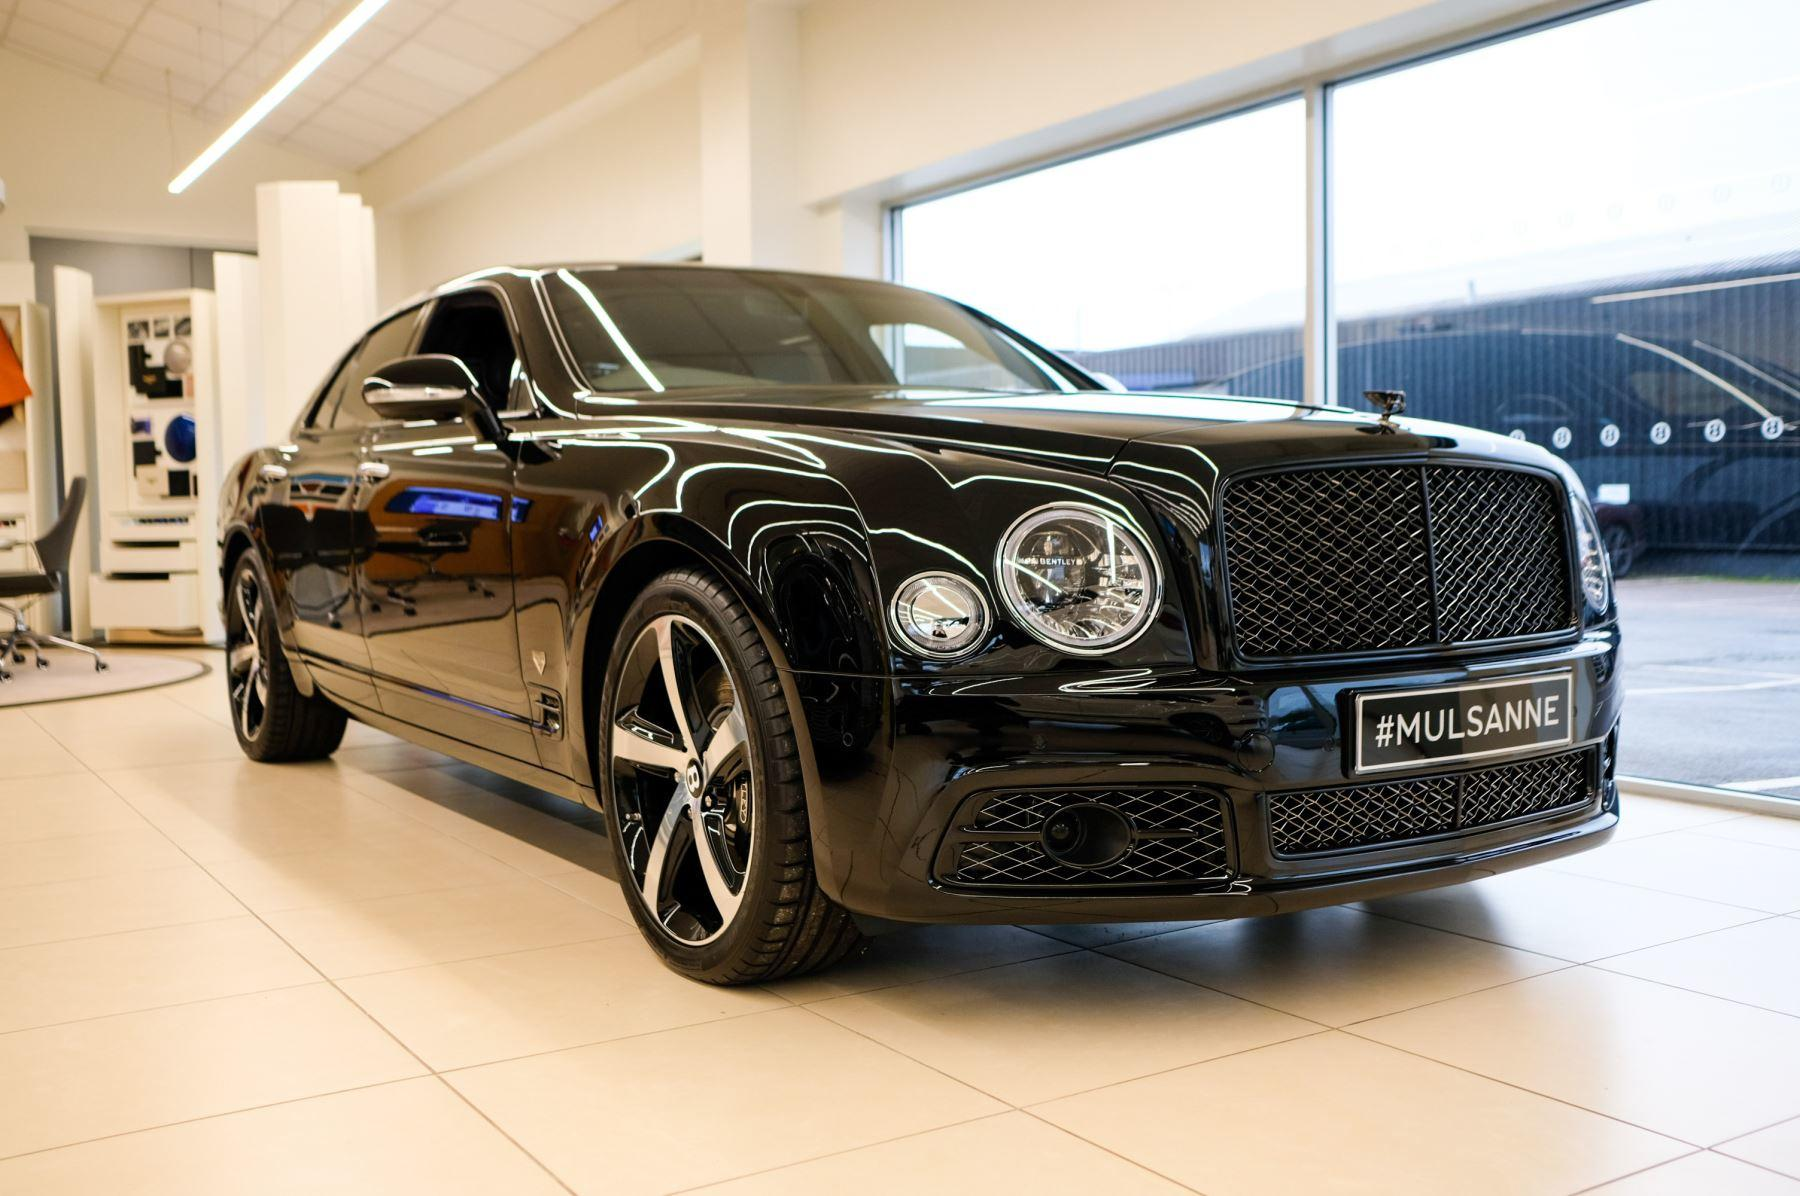 Bentley Mulsanne 0.0 Mulsanne 6.75 Edition by Mulliner Saloon Petrol Beluga